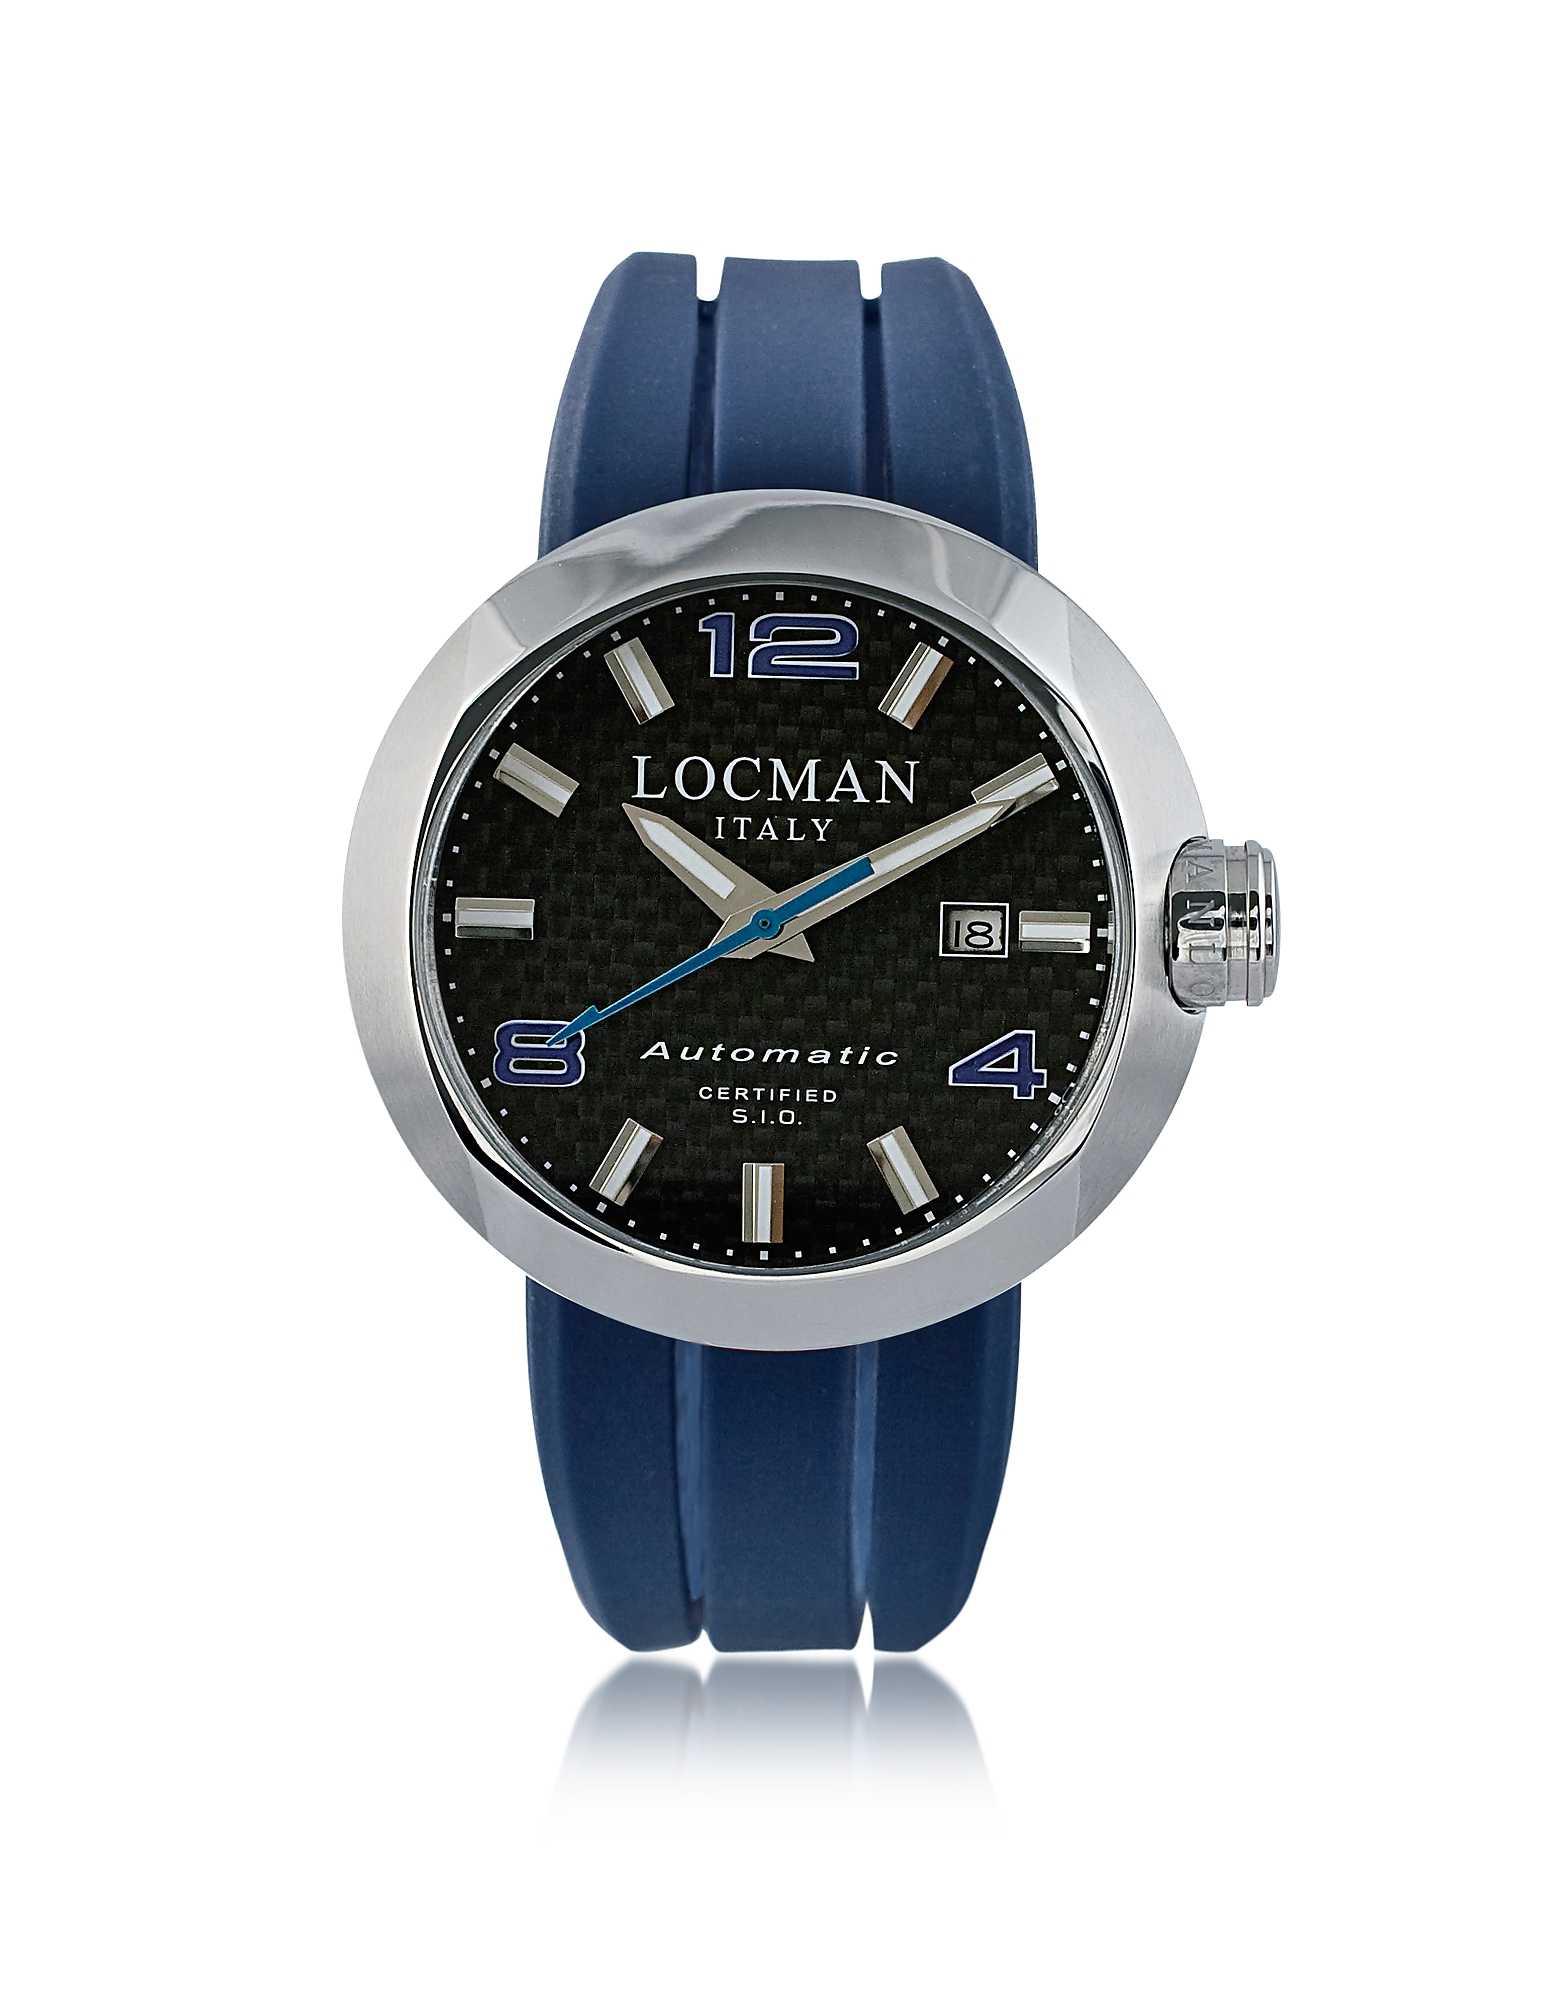 Locman Men's Watches, Change Stainless Steel Round Case Automatic Men's Watch w/ Silicone & Leather